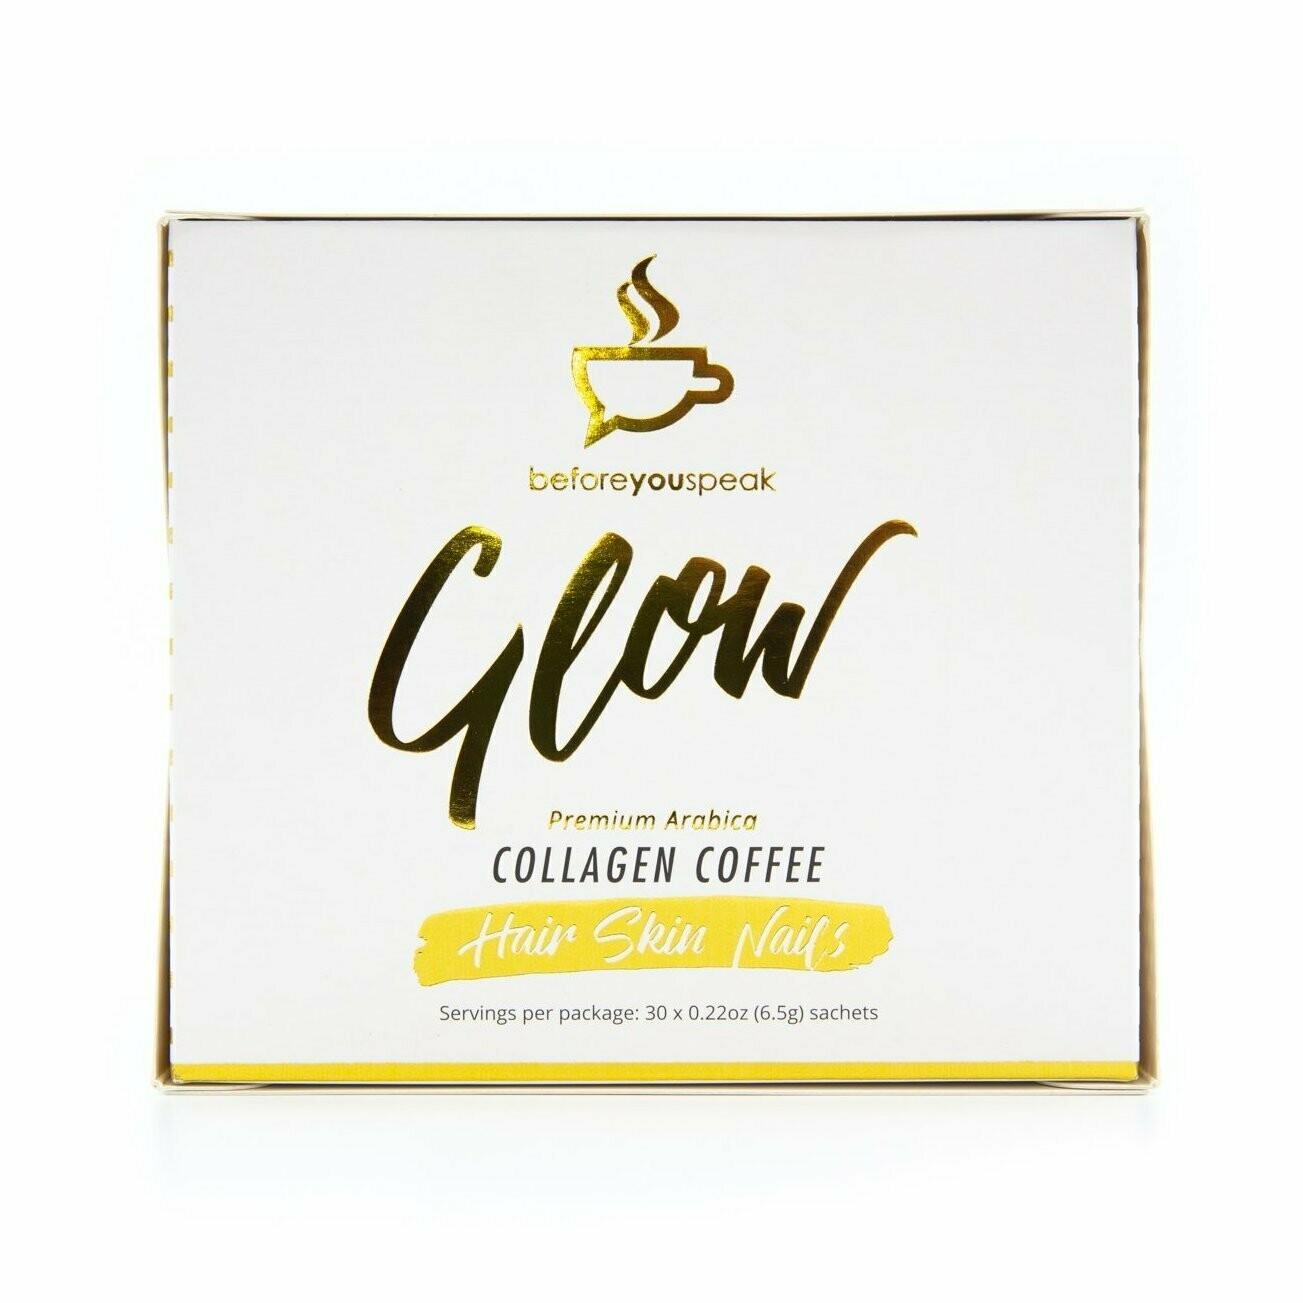 Before You Speak Coffee - Glow Collagen Coffee